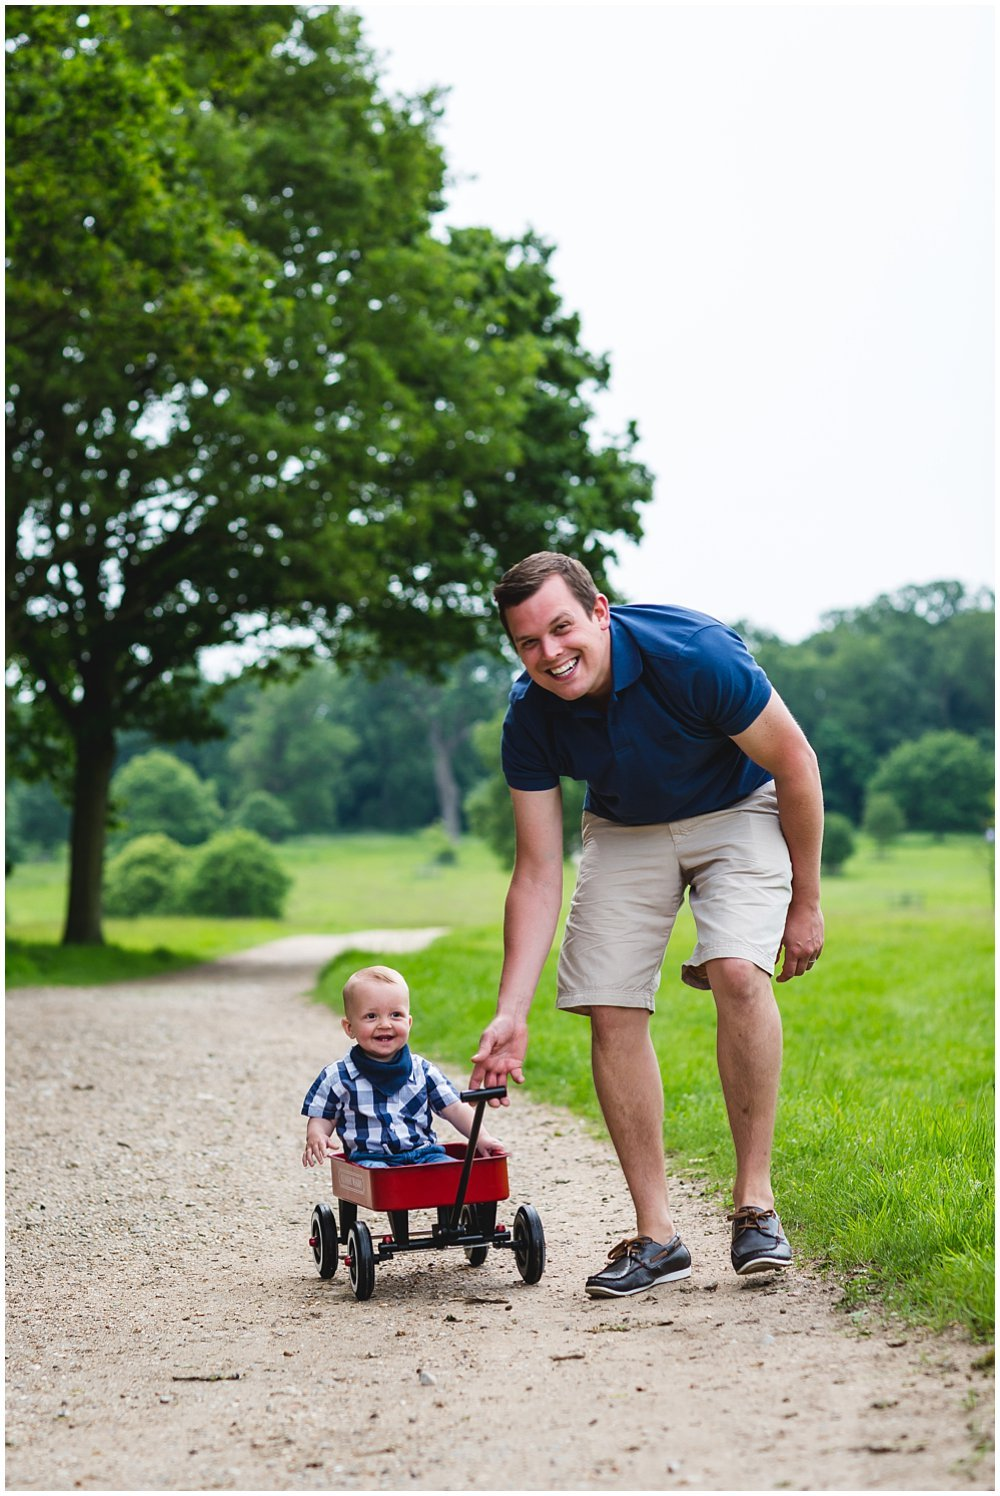 Miller Family Lifestyle Shoot Photographs - North Norfolk Family Lifestyle Photographer